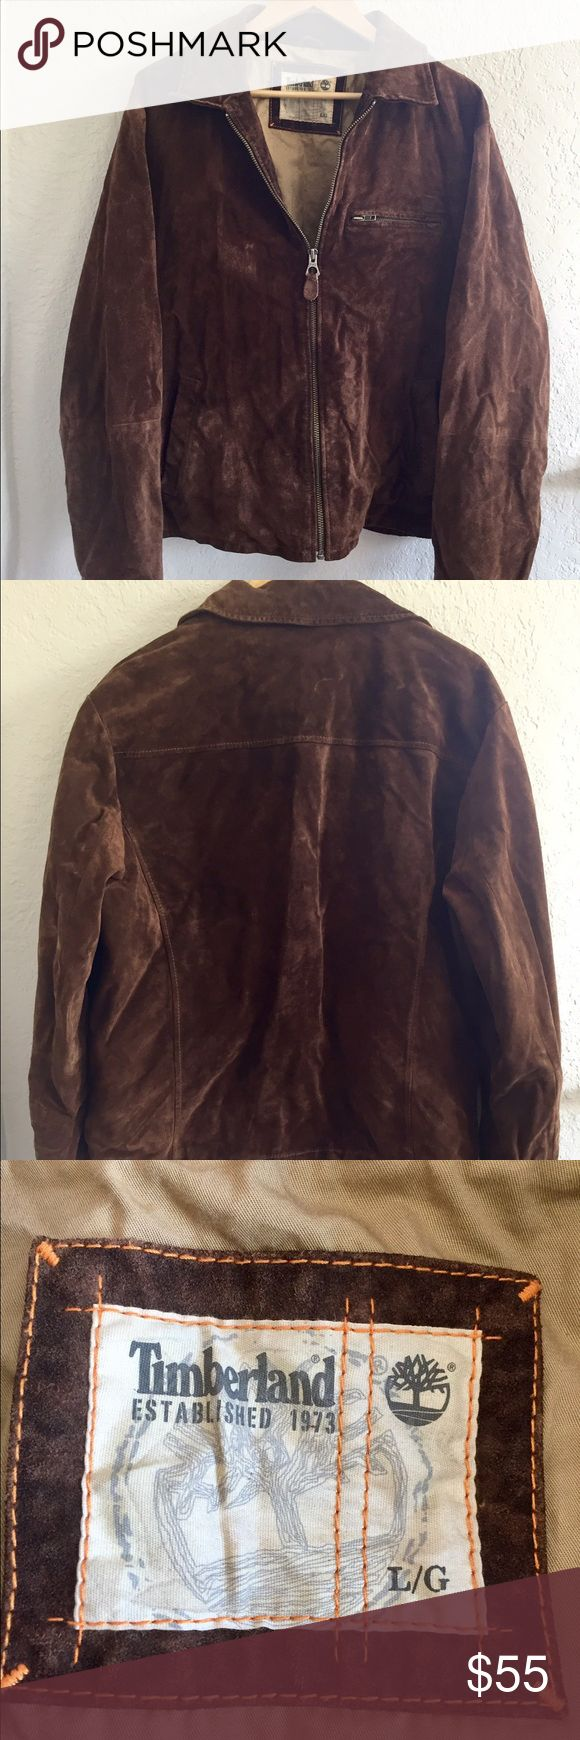 Timberland Leather Jacket Gently used Timberland leather jacket. Pockets inside and outside. Very little wear on the outside but there are some really small stains inside, smaller than the size of a dime. Not noticeable since they are on the inside. Other than that leather in in good condition. It is fully lined. Size Large. Timberland Jackets & Coats